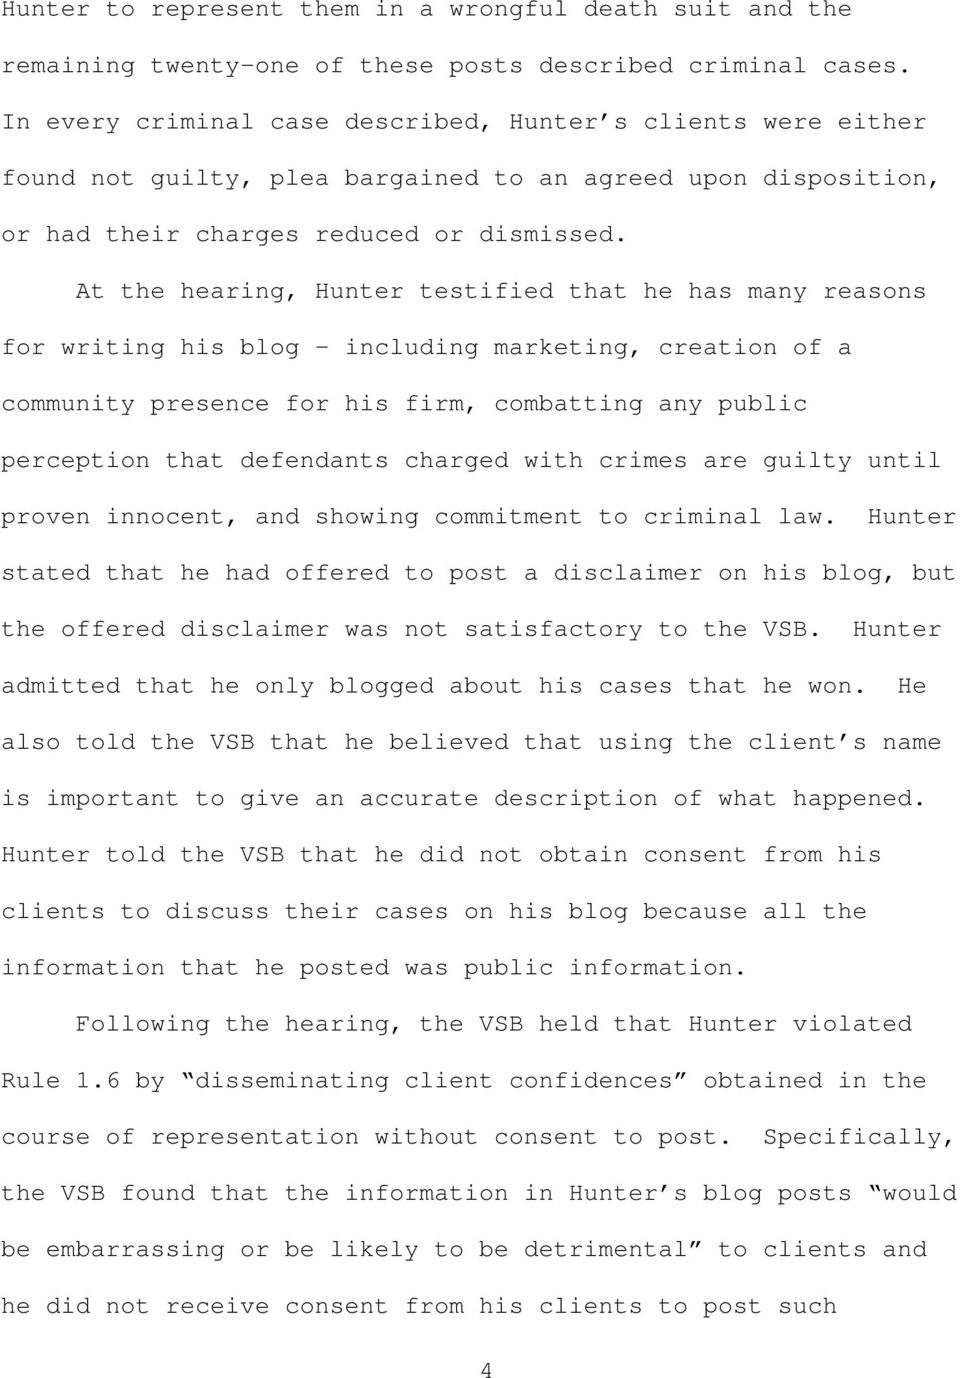 At the hearing, Hunter testified that he has many reasons for writing his blog - including marketing, creation of a community presence for his firm, combatting any public perception that defendants